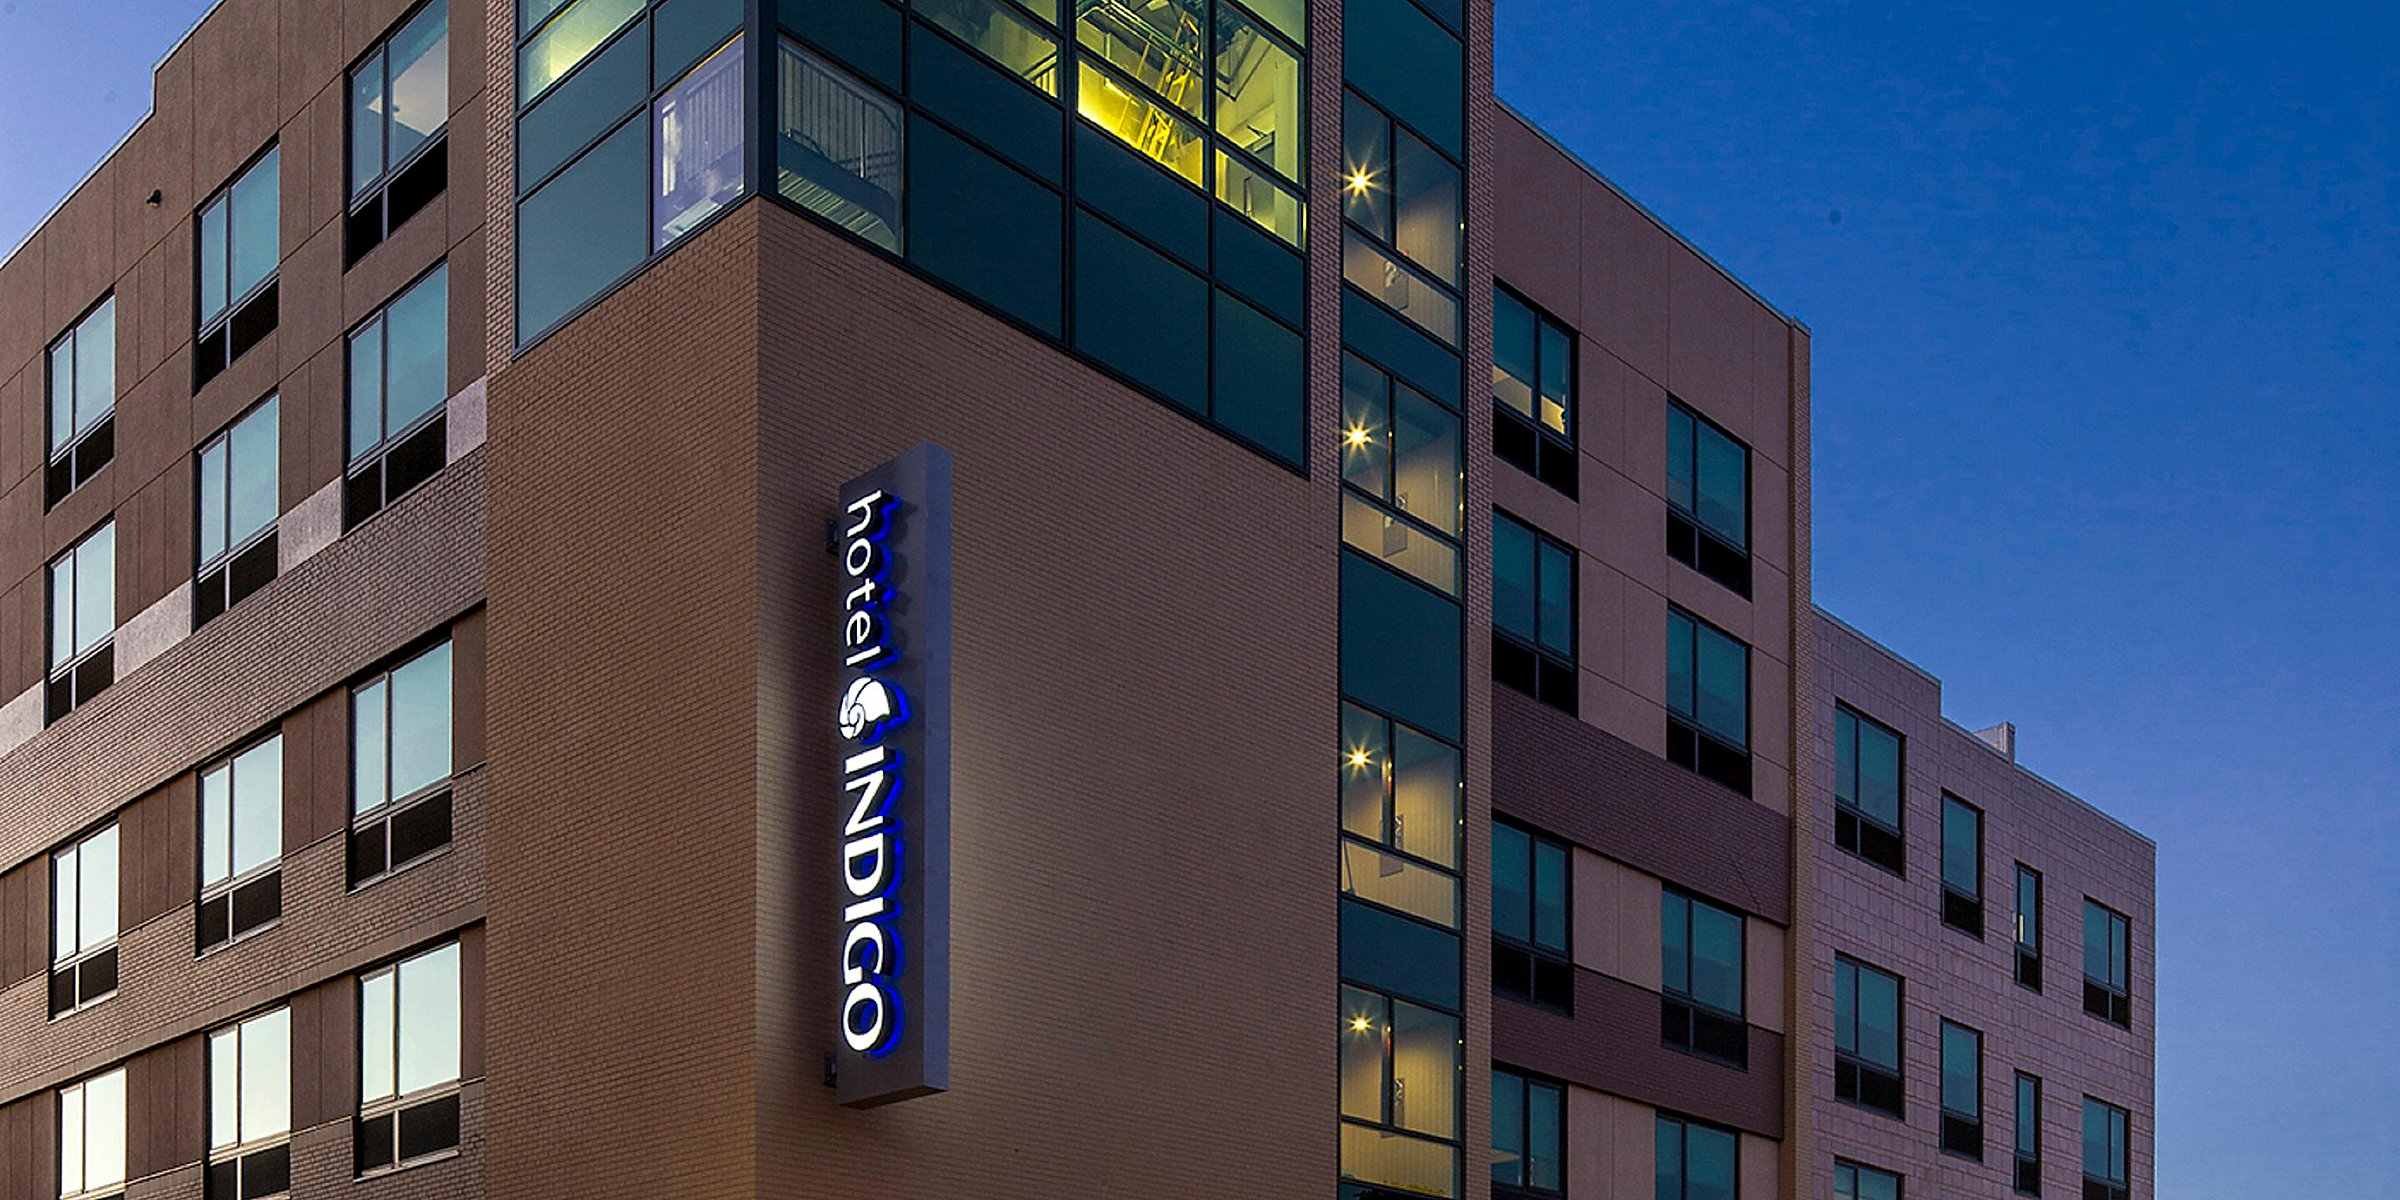 Pittsburgh Hotels: Hotel Indigo Pittsburgh East Liberty